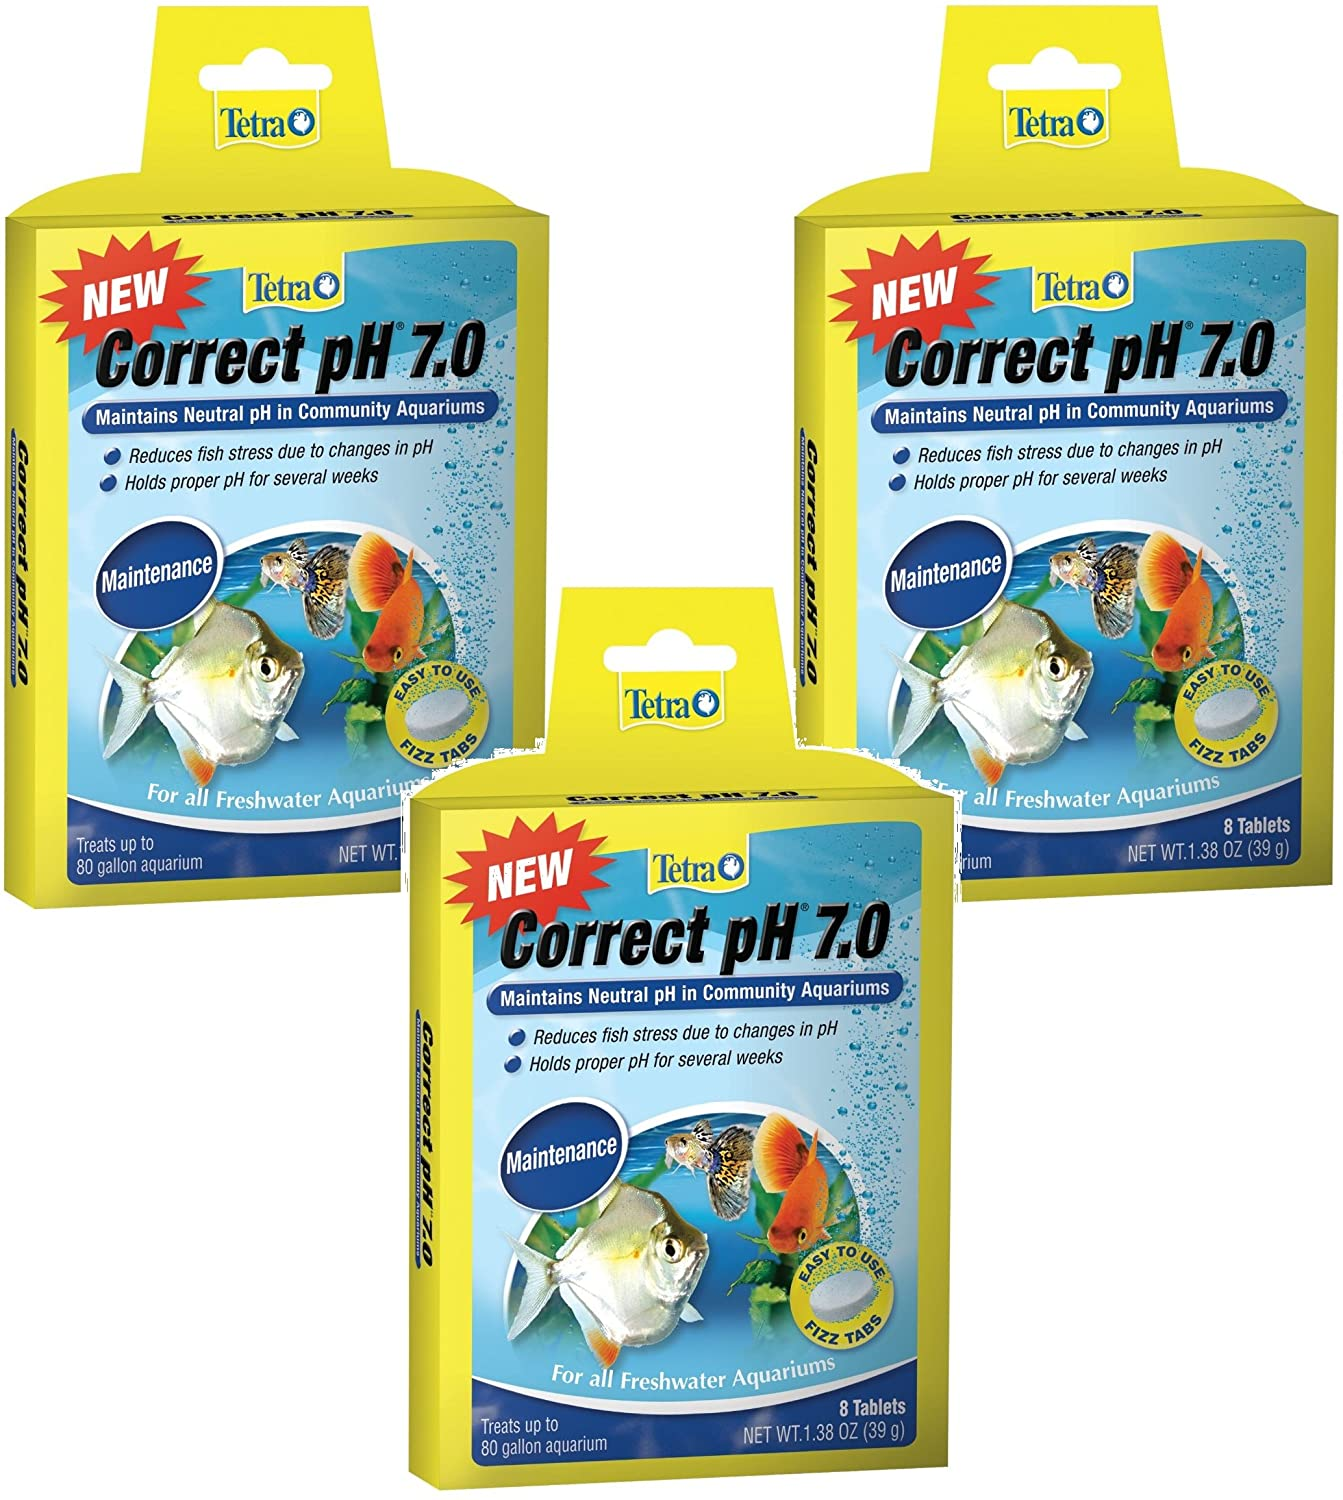 Tetra Correct pH Tablets - 24 Tablets Total (3 Packs with 8 Tablets per Pack)